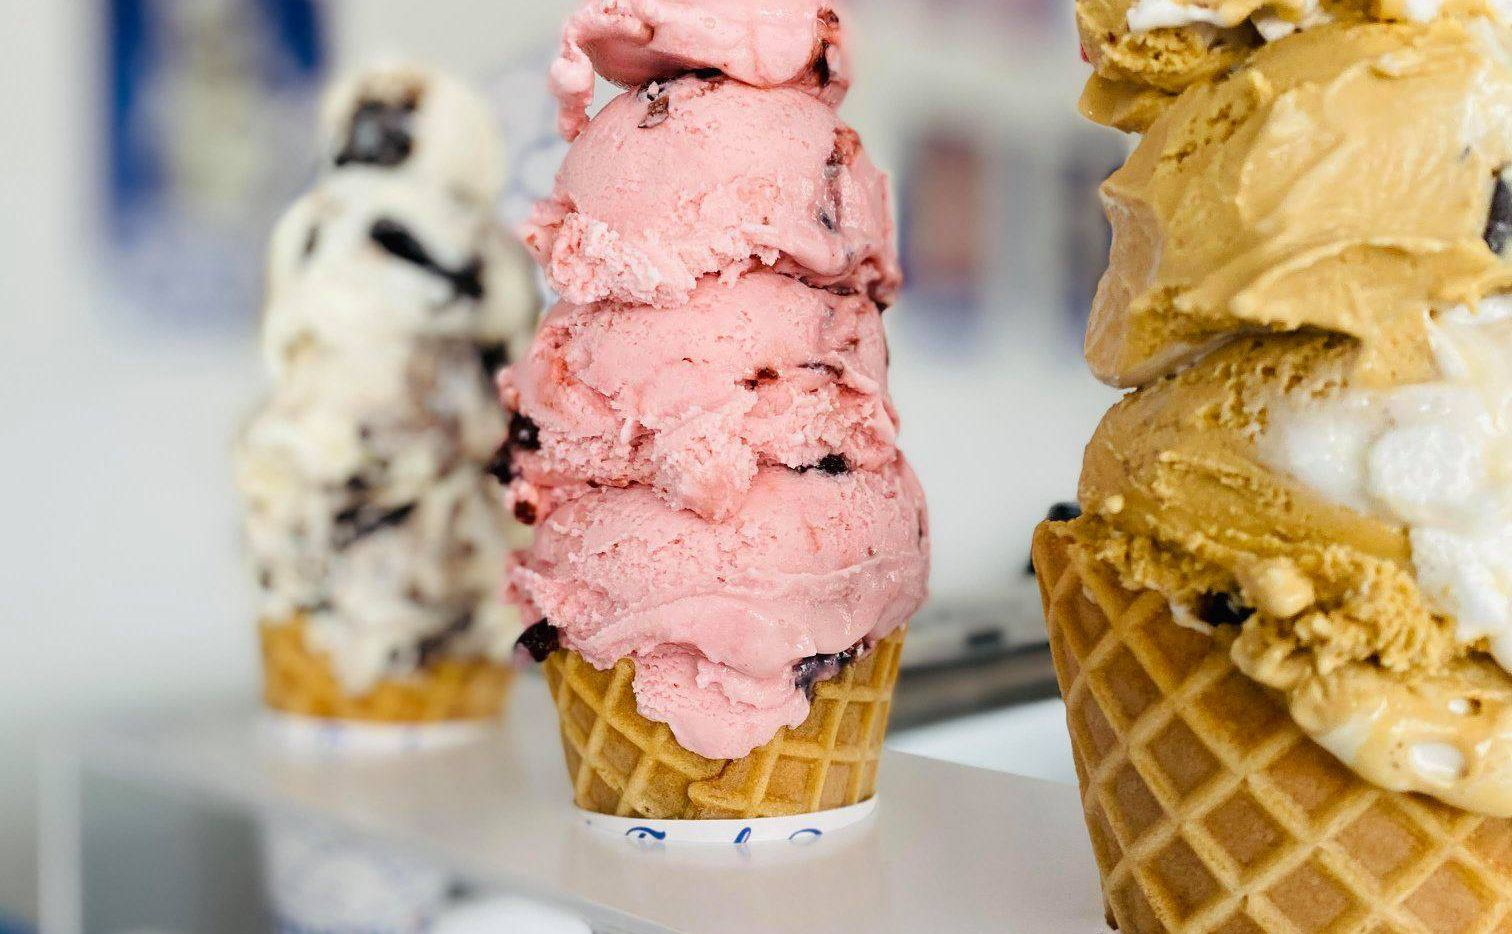 Small batches and big servings are hallmarks at Handel's Homemade Ice Cream, a growing chain that recently opened stores in McKinney and Flower Mound.